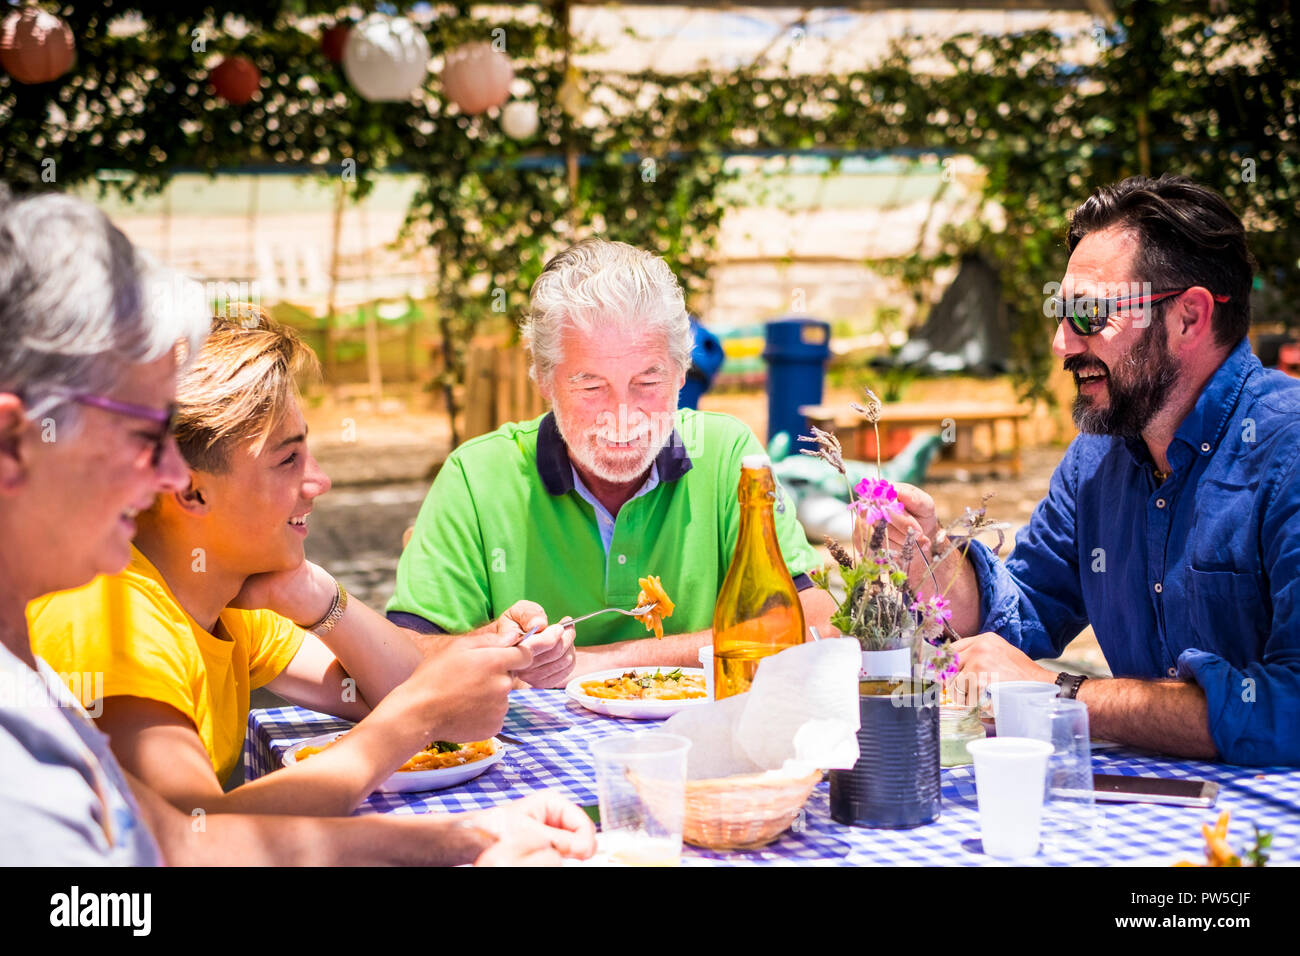 caucasian family having lunch together during a sunny day having fun and smiling while eat italian pasta food. restaurant natural place with cheap dis - Stock Image